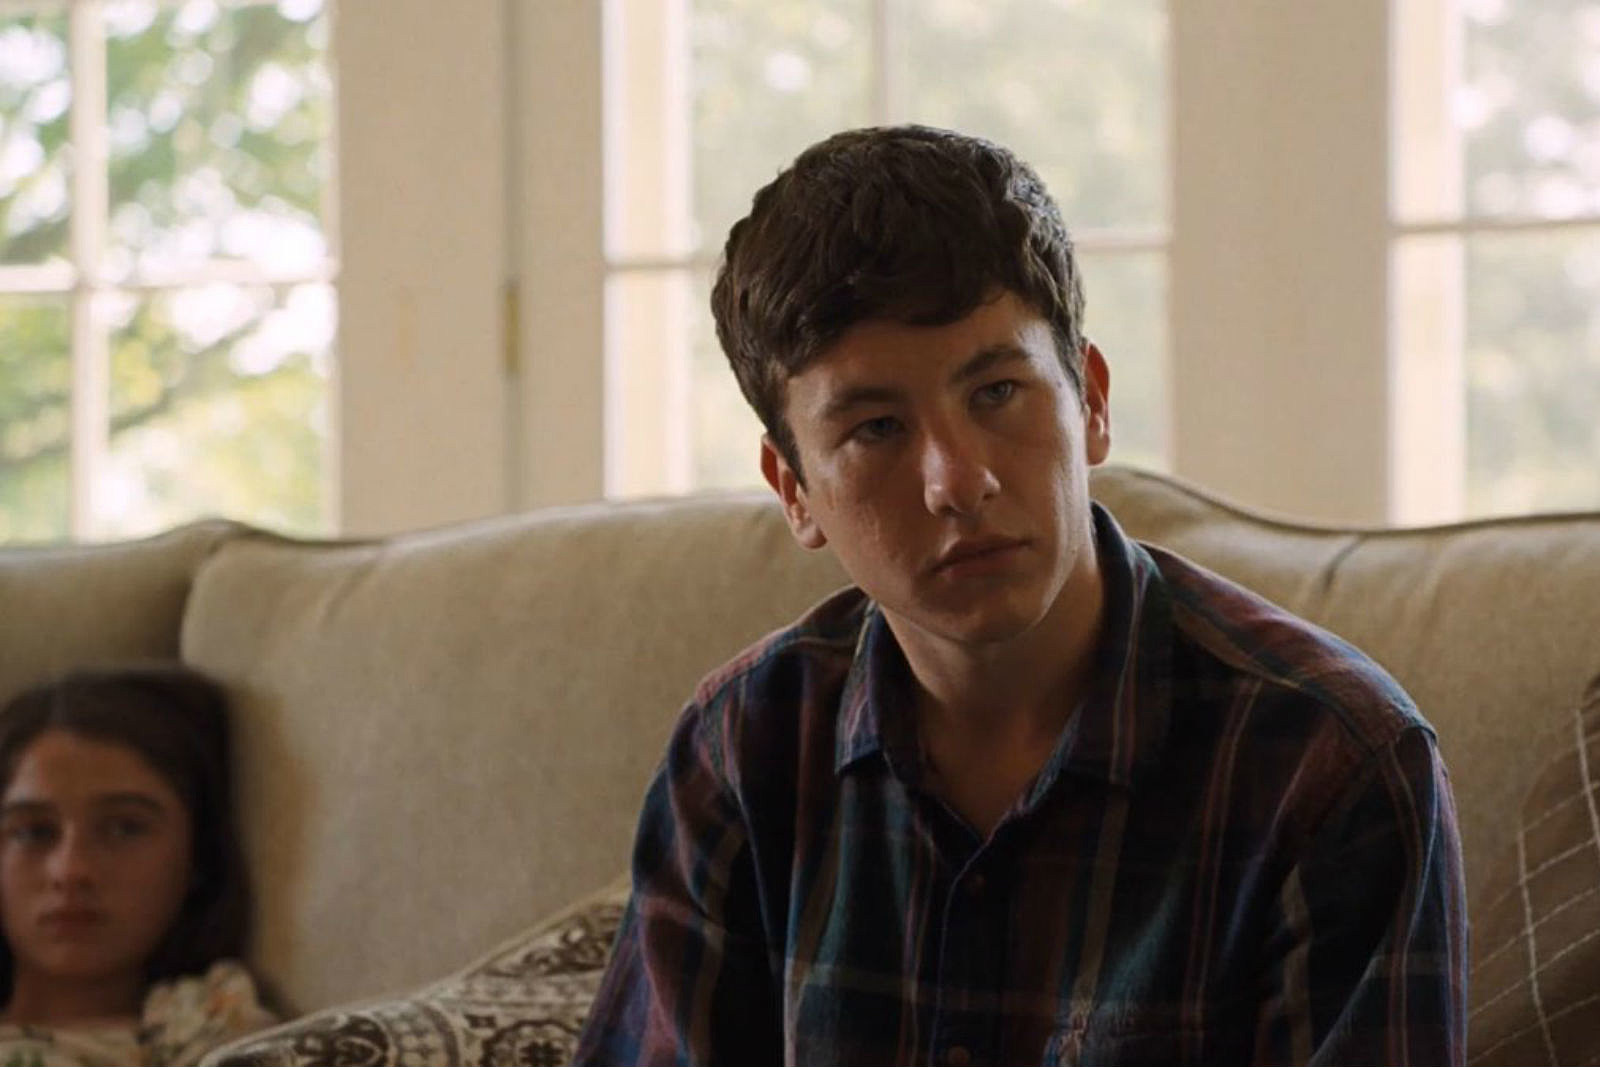 Young Martin Lang (Barry Keoghan) outlines the curse that gas afflicted Colin Farrell's family for the death of his father in The Killing of a Sacred Deer (2017